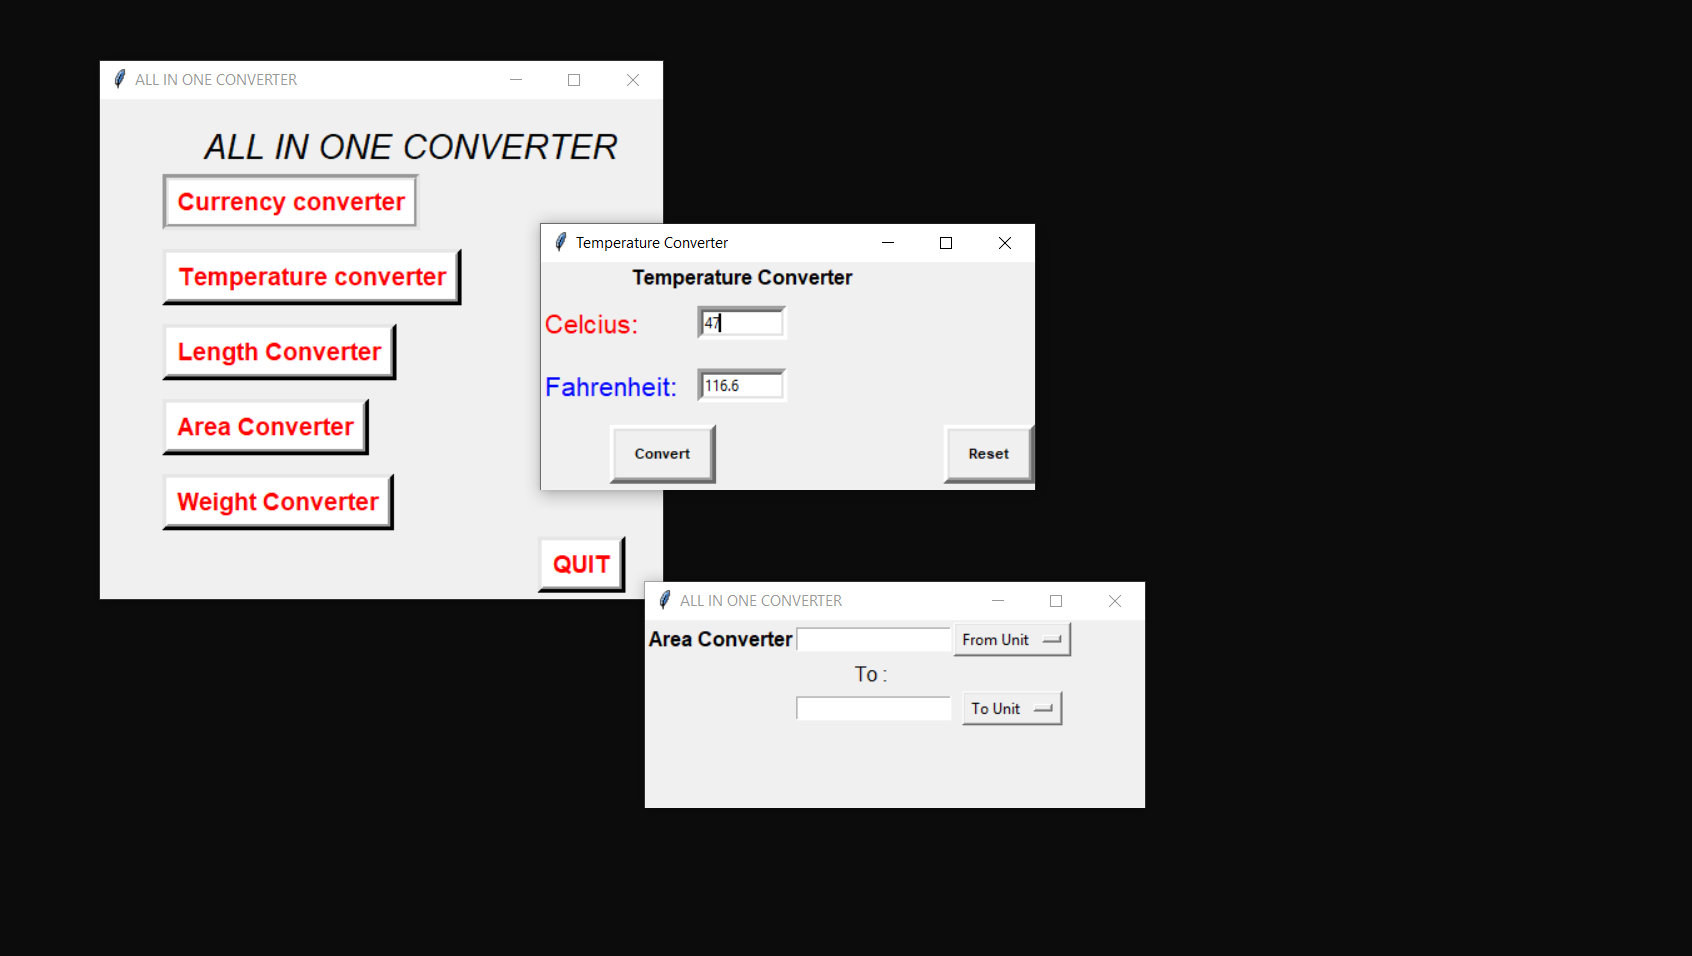 image of all in one converter